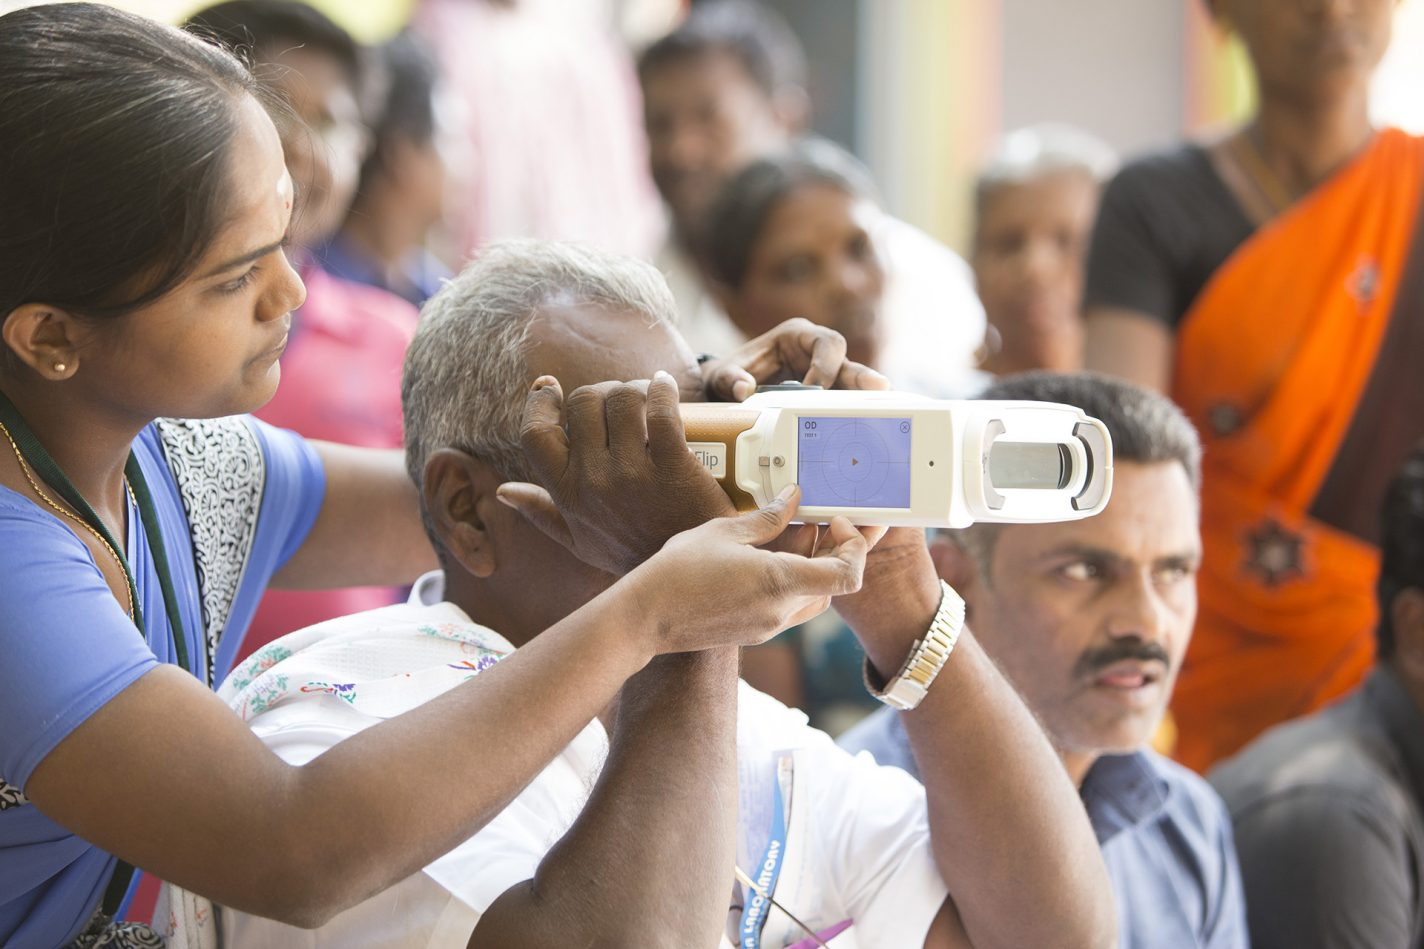 QuickSee handheld autorefractor in use in India vision care